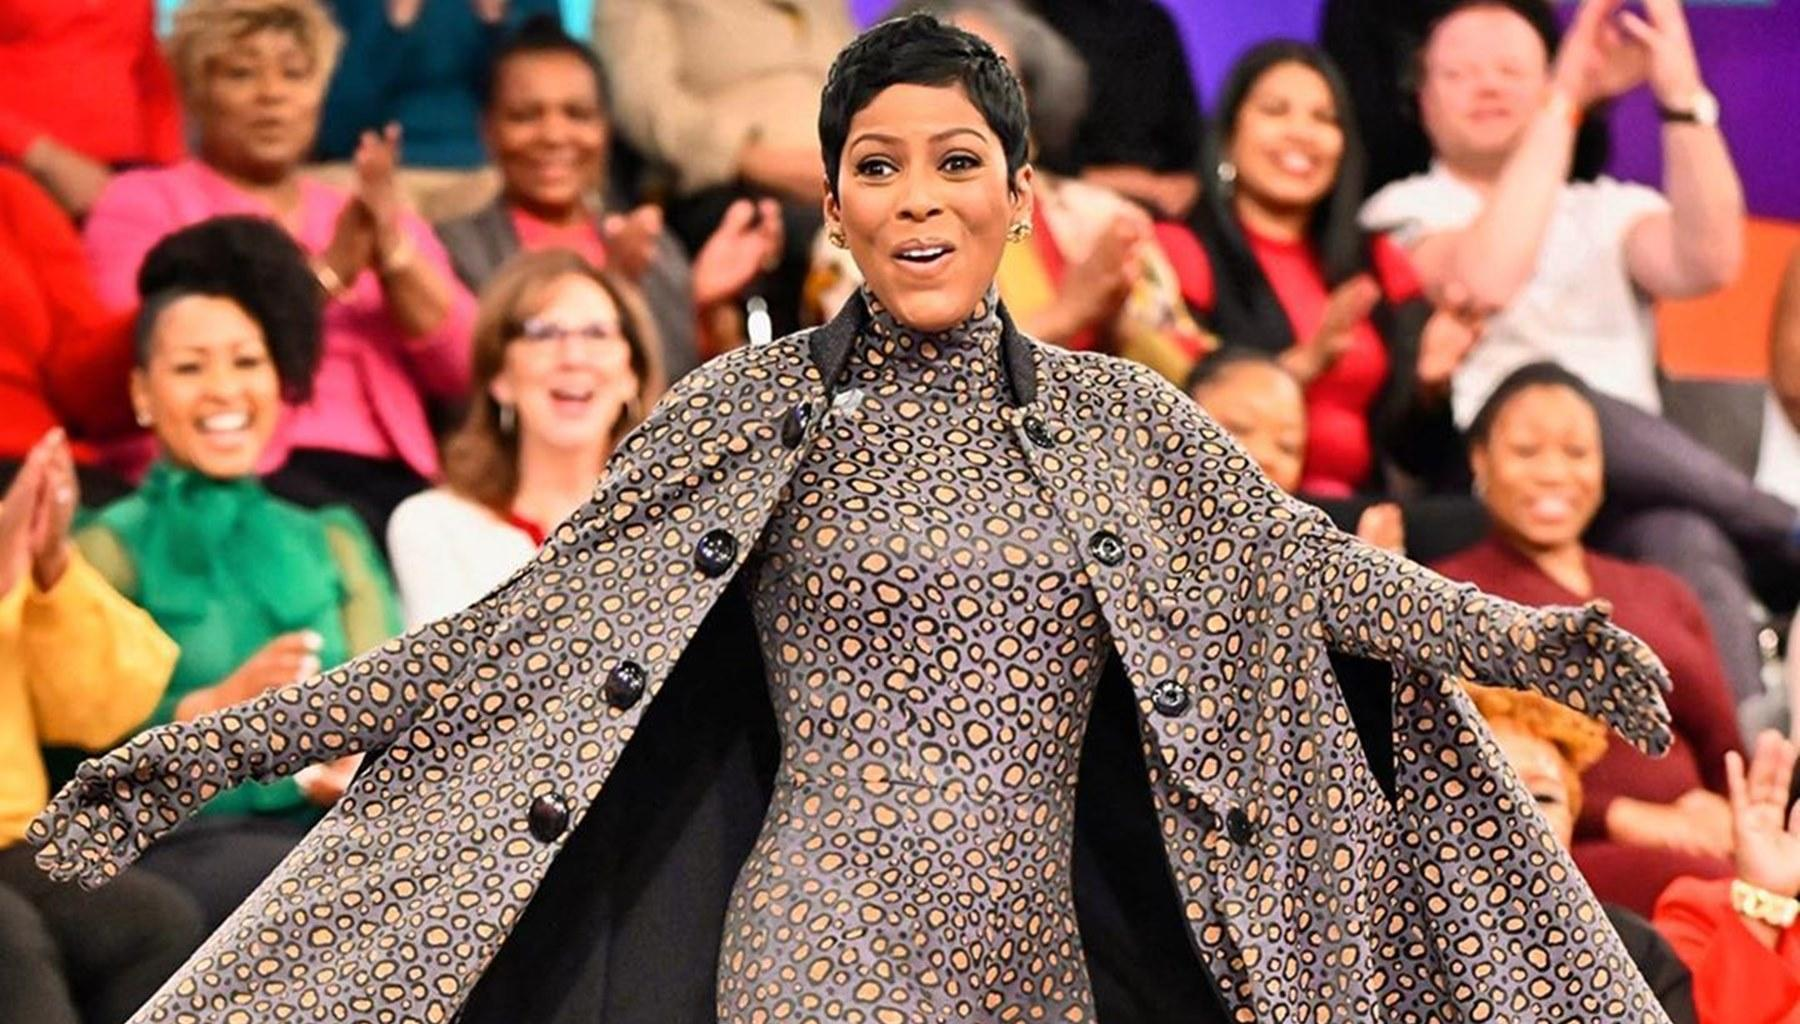 Tamron Hall Looks Glamorous In New Photo Shoot With Baby Moses, TV Host Gets Raw About Being Mom-Shamed